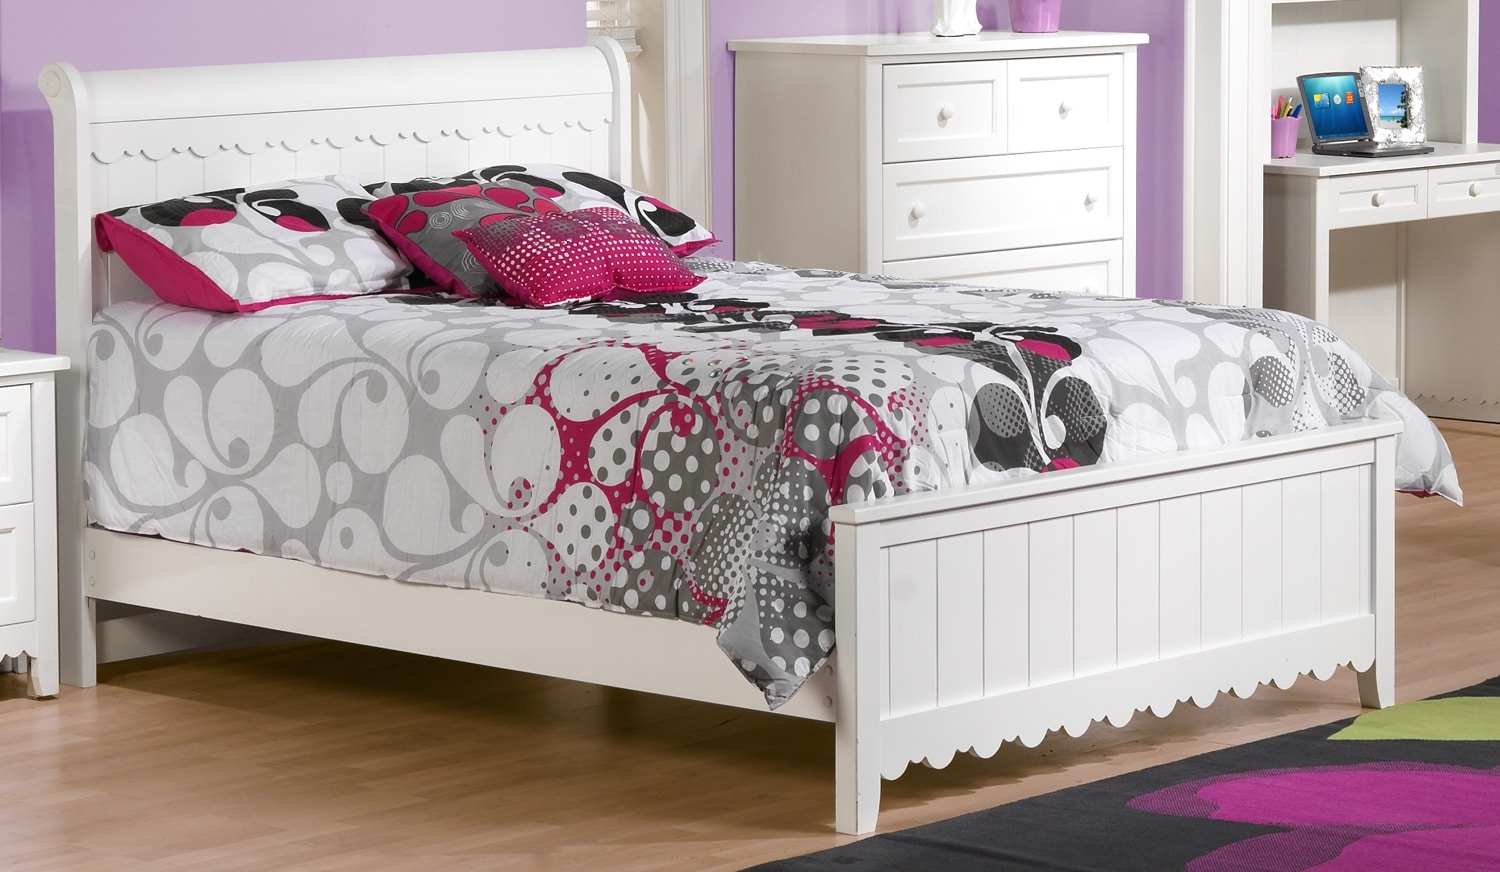 sweetdreams twin bed  white  leon's -  sweetdreams twin bed  white hover to zoom